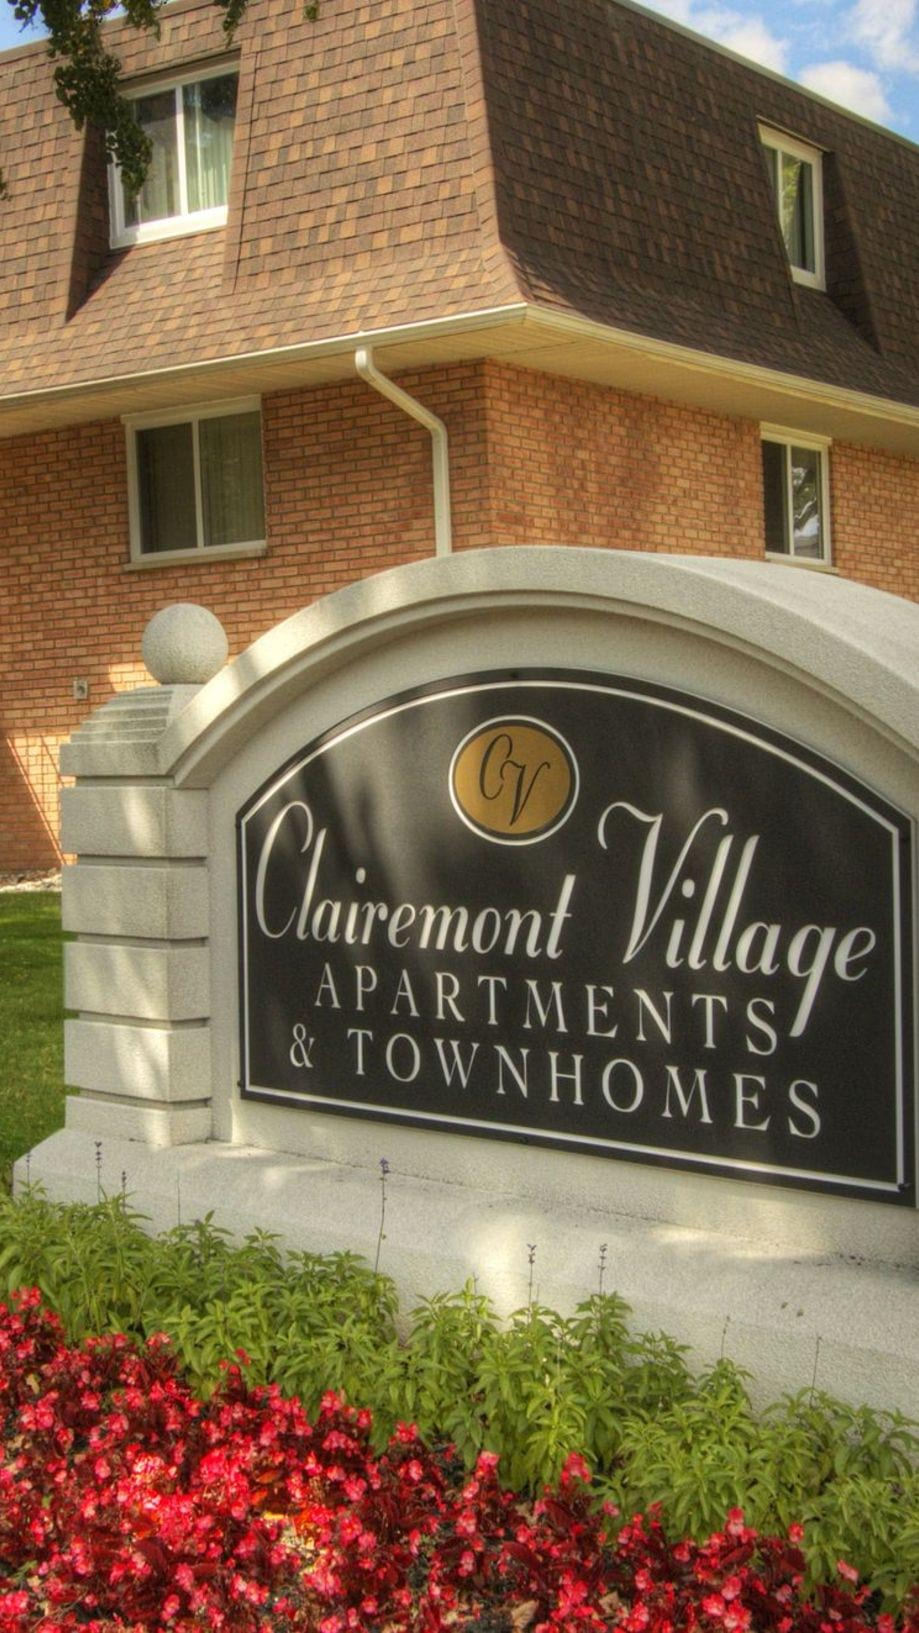 Apartments for Rent in Saginaw, MI   Clairemont Village ... on 750 square feet apartment plans, 2 bedroom garage apartment plans, apartment design plans, townhouse with garage plans, large mansion layout plans, 5 bedroom 3 bath floor plans, townhouse apartment building, two apartments floor plans, townhouse apartment layout,